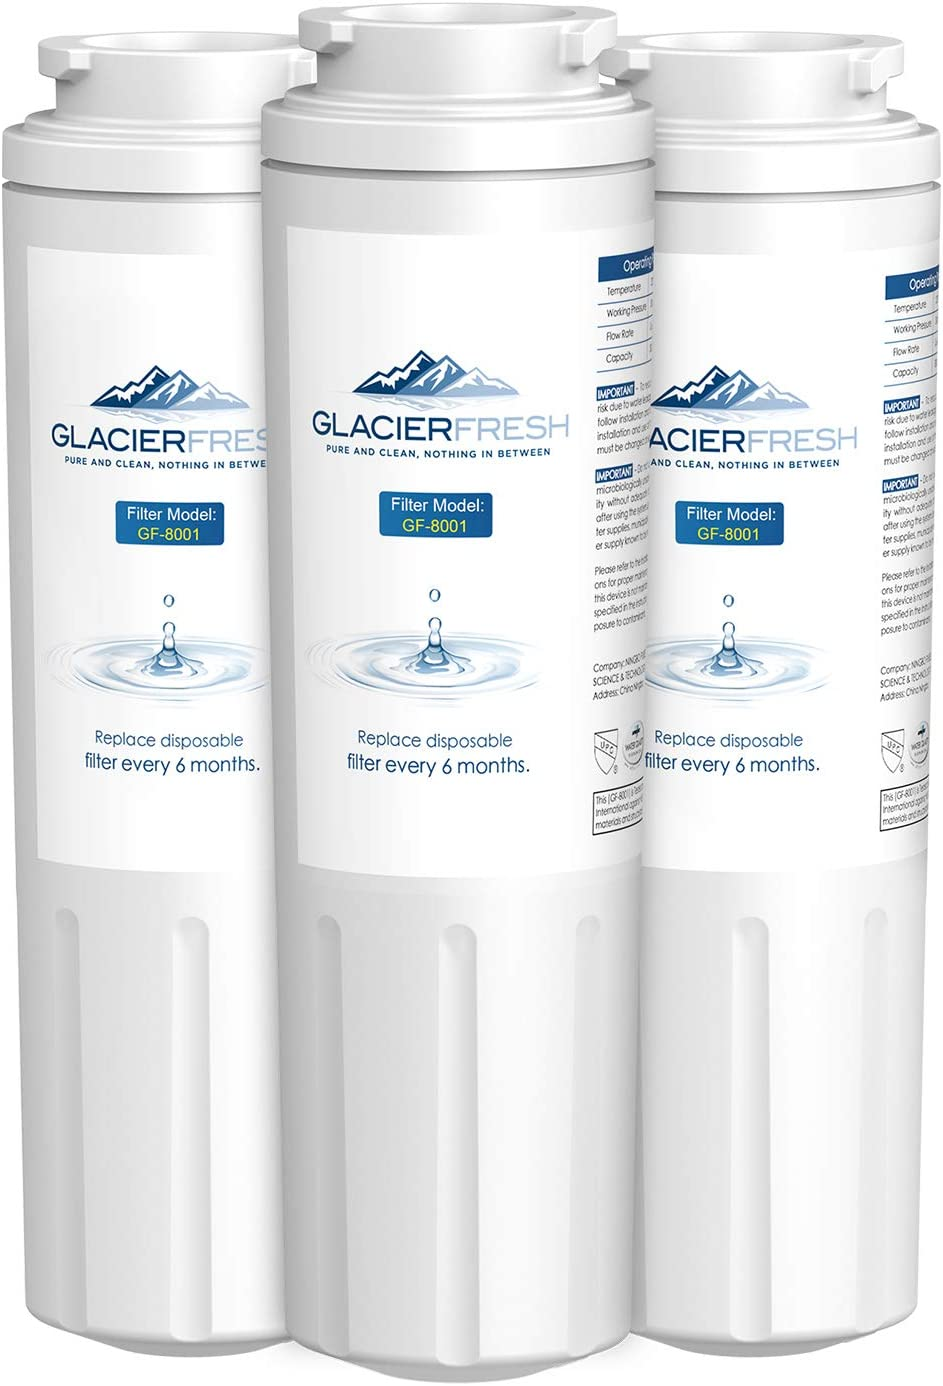 GLACIER FRESH UKF8001 Water Filter Cartridges NSF 42 Certified, Compatible with Maytag UKF8001, KitchenAid 4396395, UKF8001AXX, UKF8001P, Filter 4, EDR4RXD1, 469006, Puriclean II, (3 Packs)